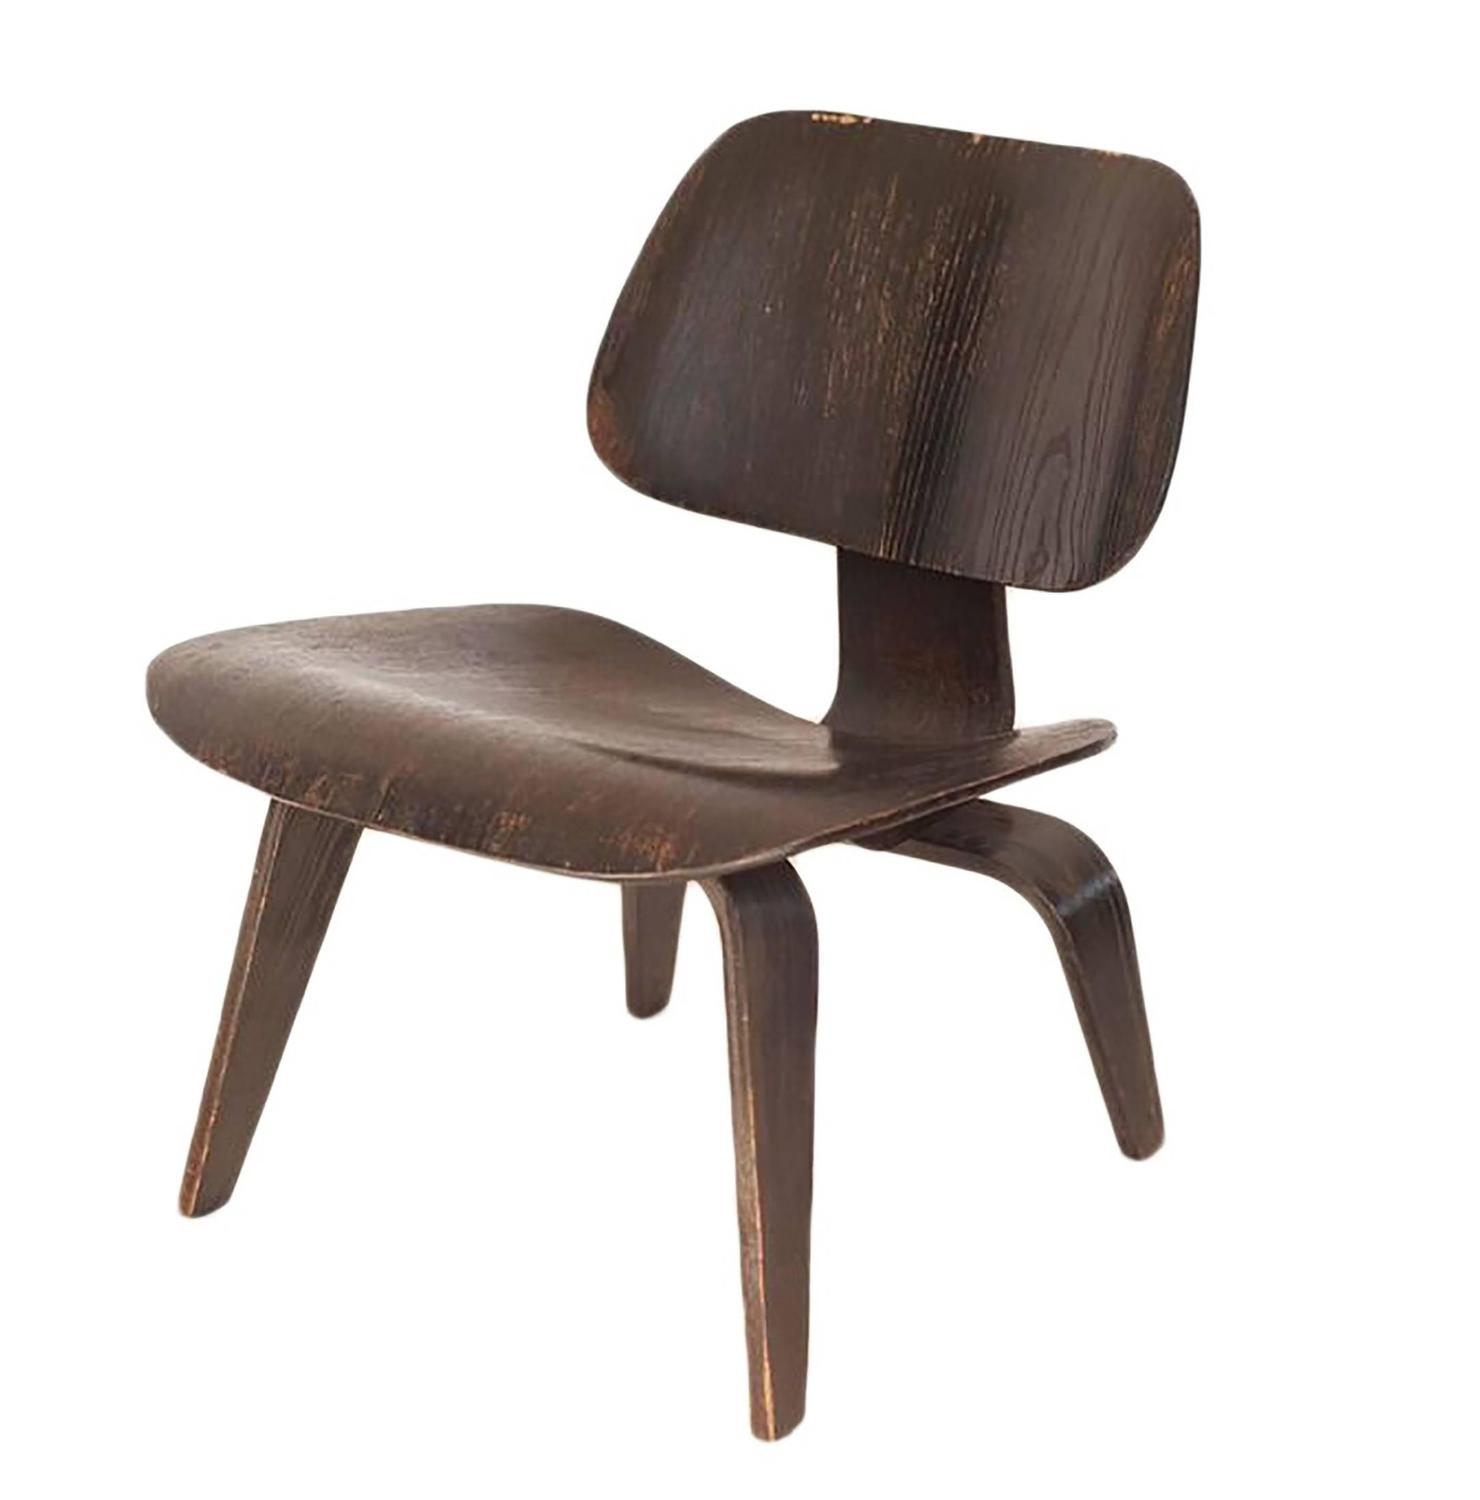 Chaises charles eames lcw for Chaise imitation charles eames